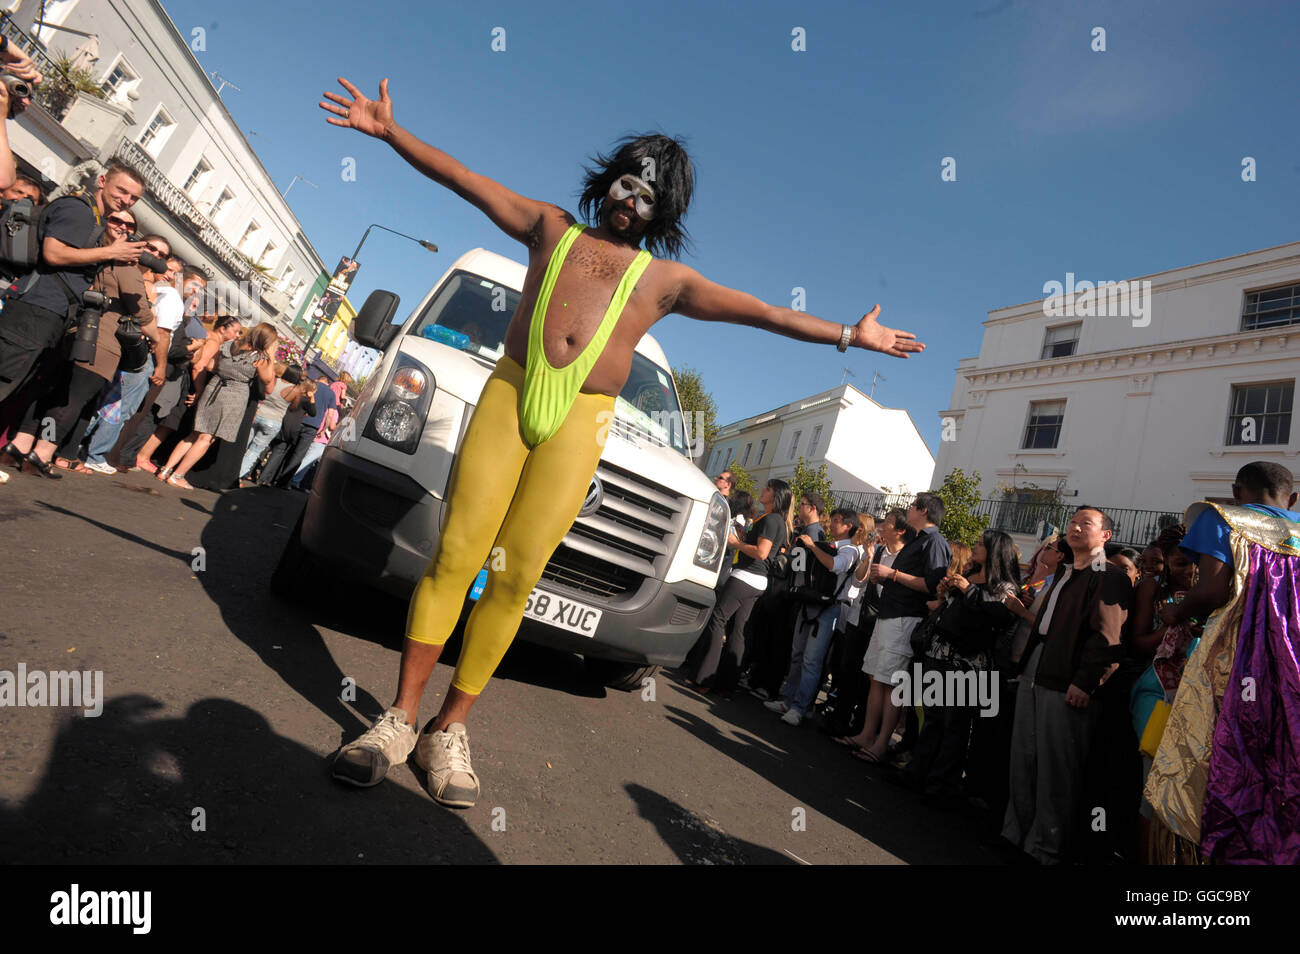 man in mankini Atmosphere and crowds at the 2009 Notting Hill Carnival, 31st August 2011. - Stock Image